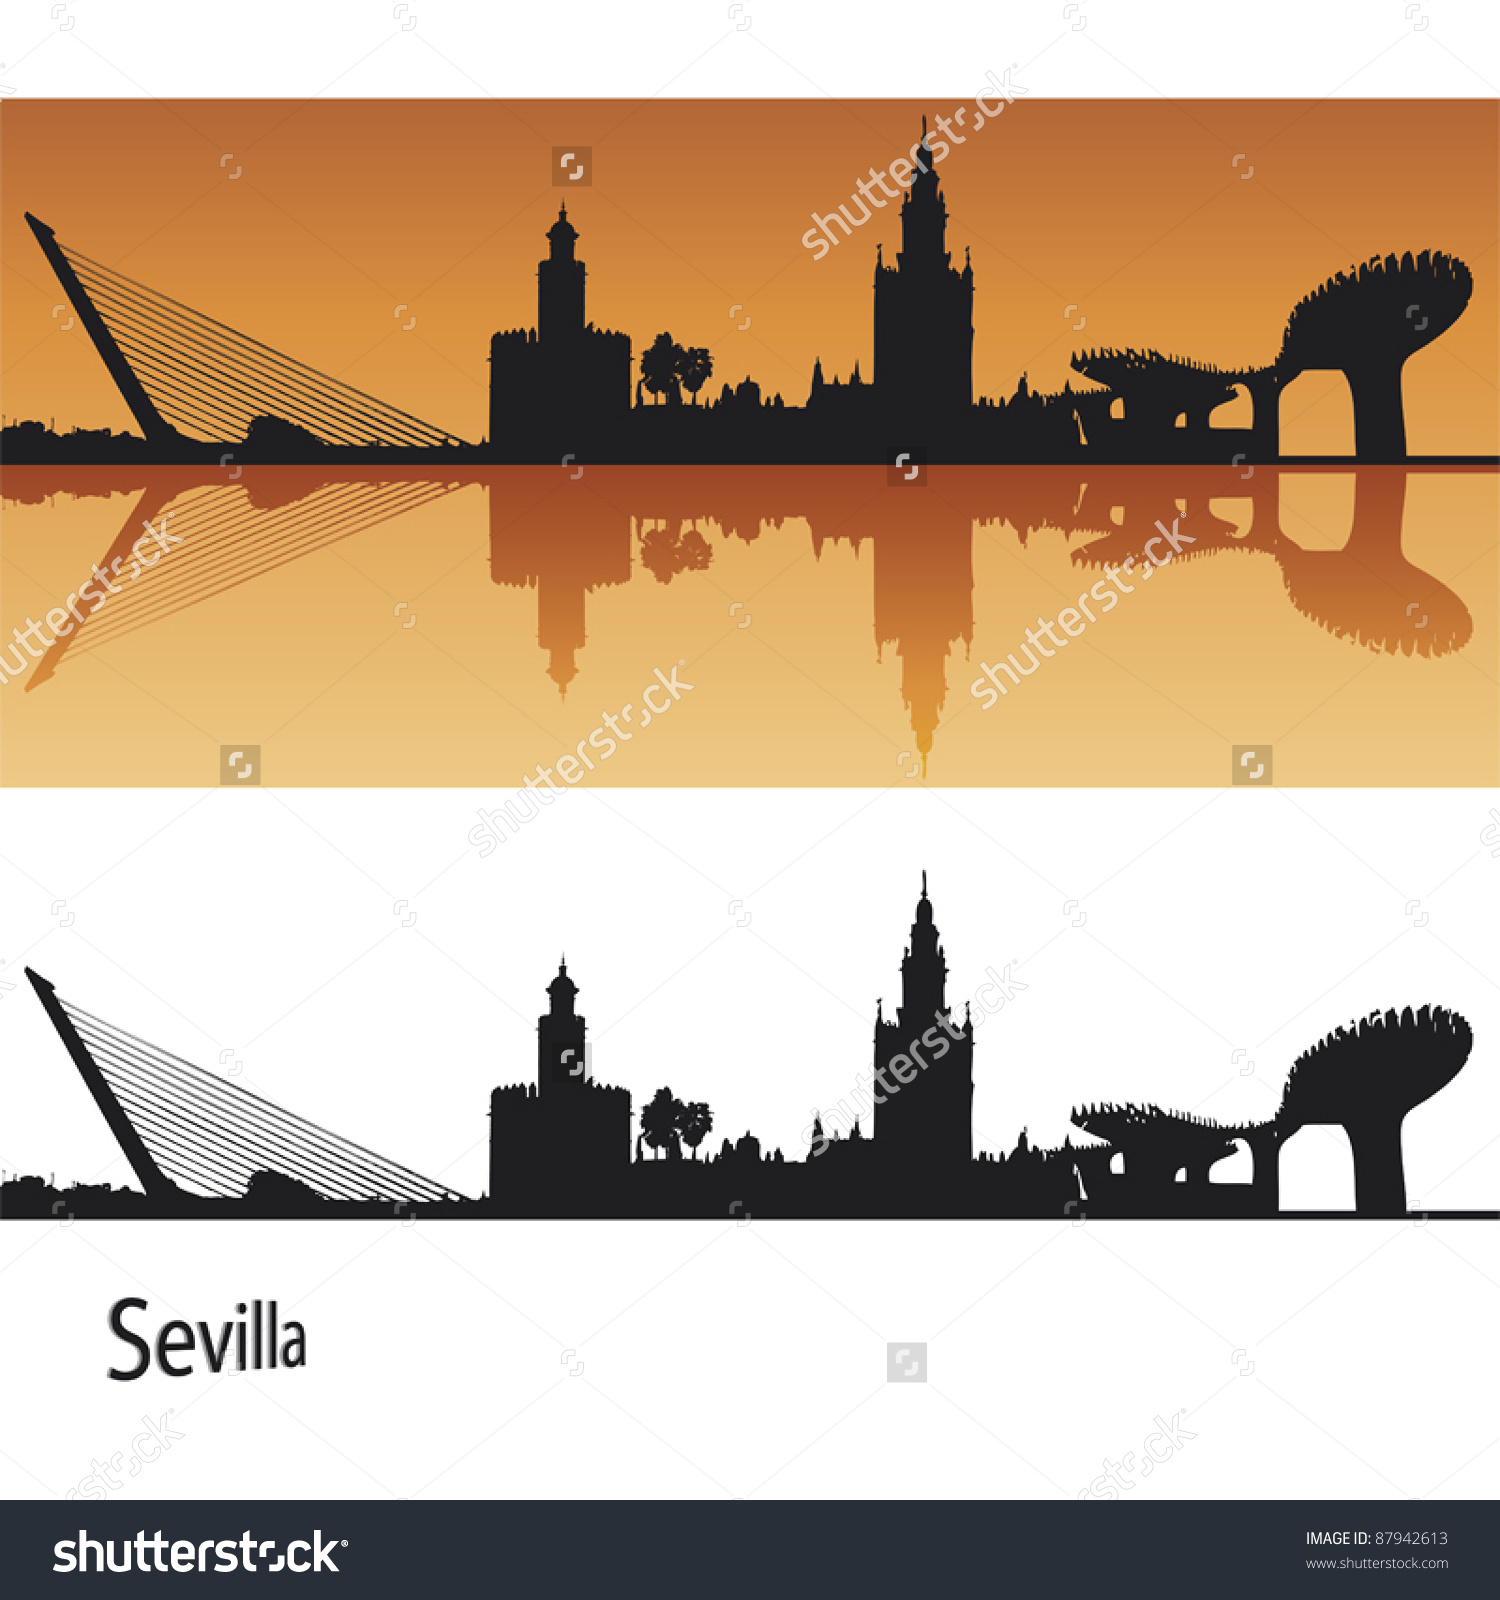 Seville Skyline Orange Background Editable Vector Stock Vector.